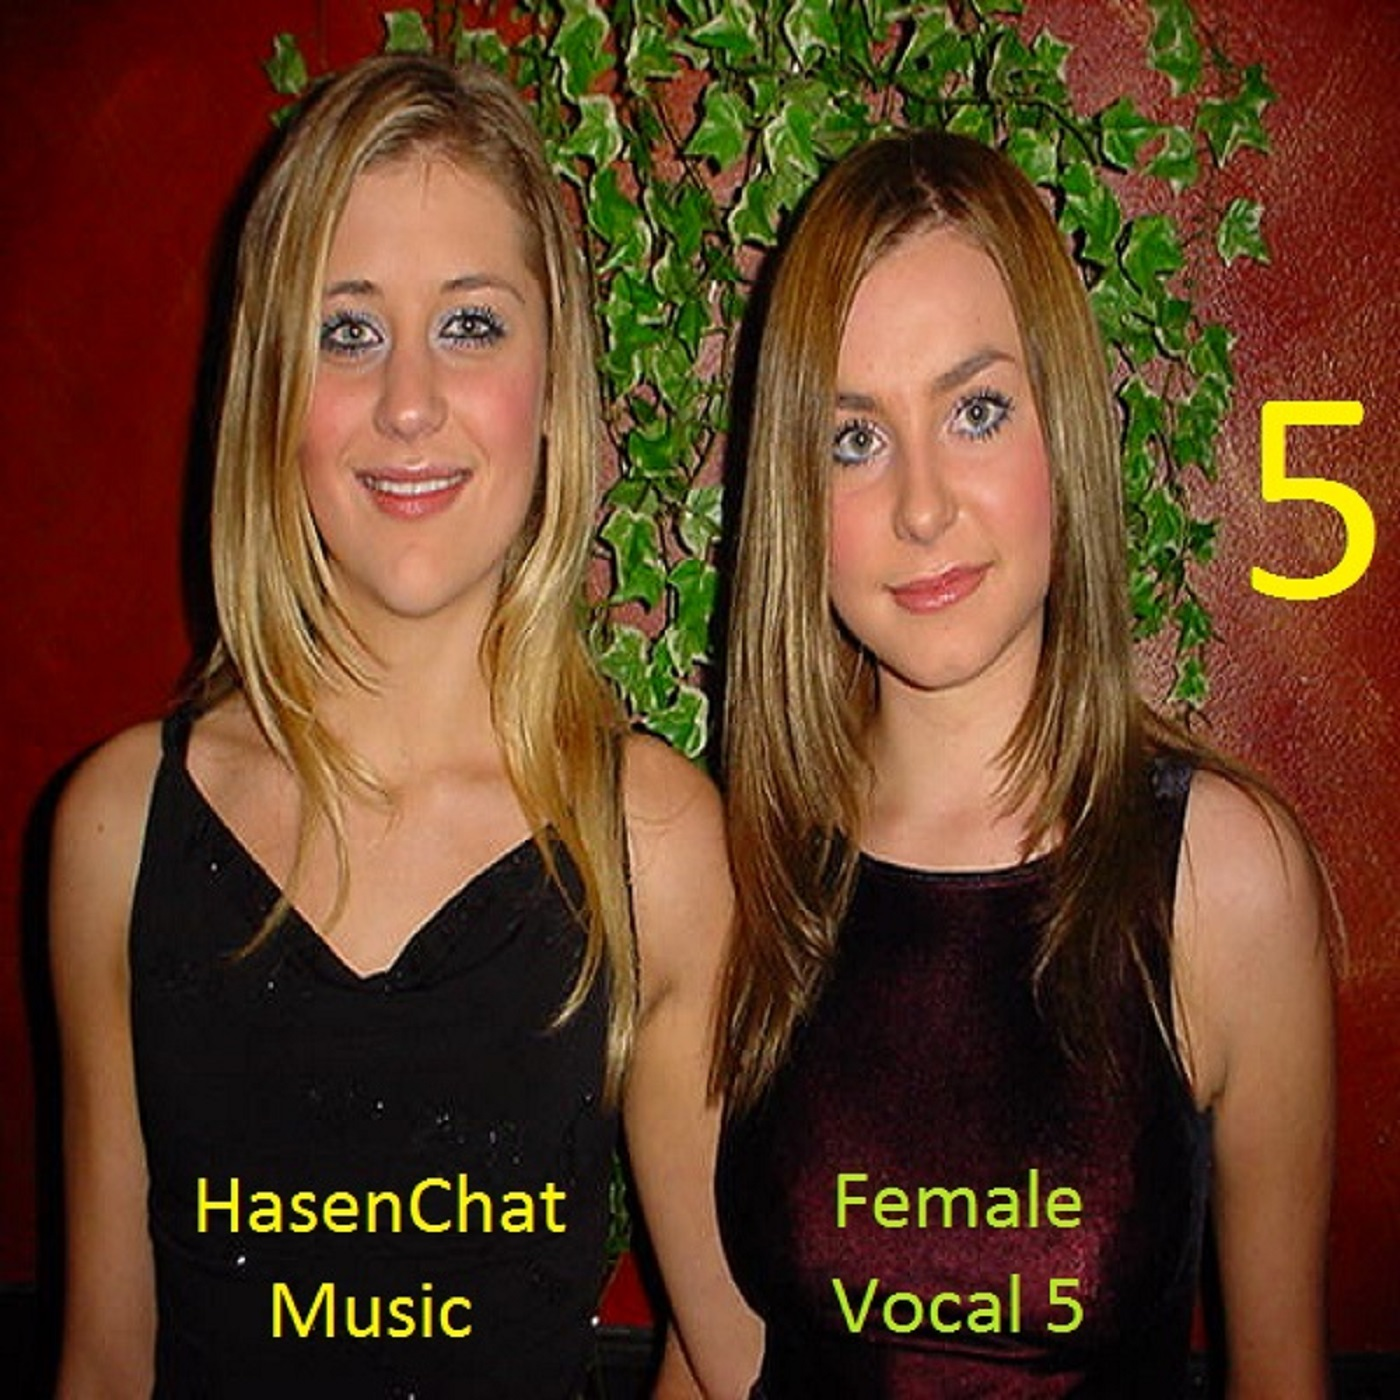 HasenChat Music - Female Vocal - Episode 5